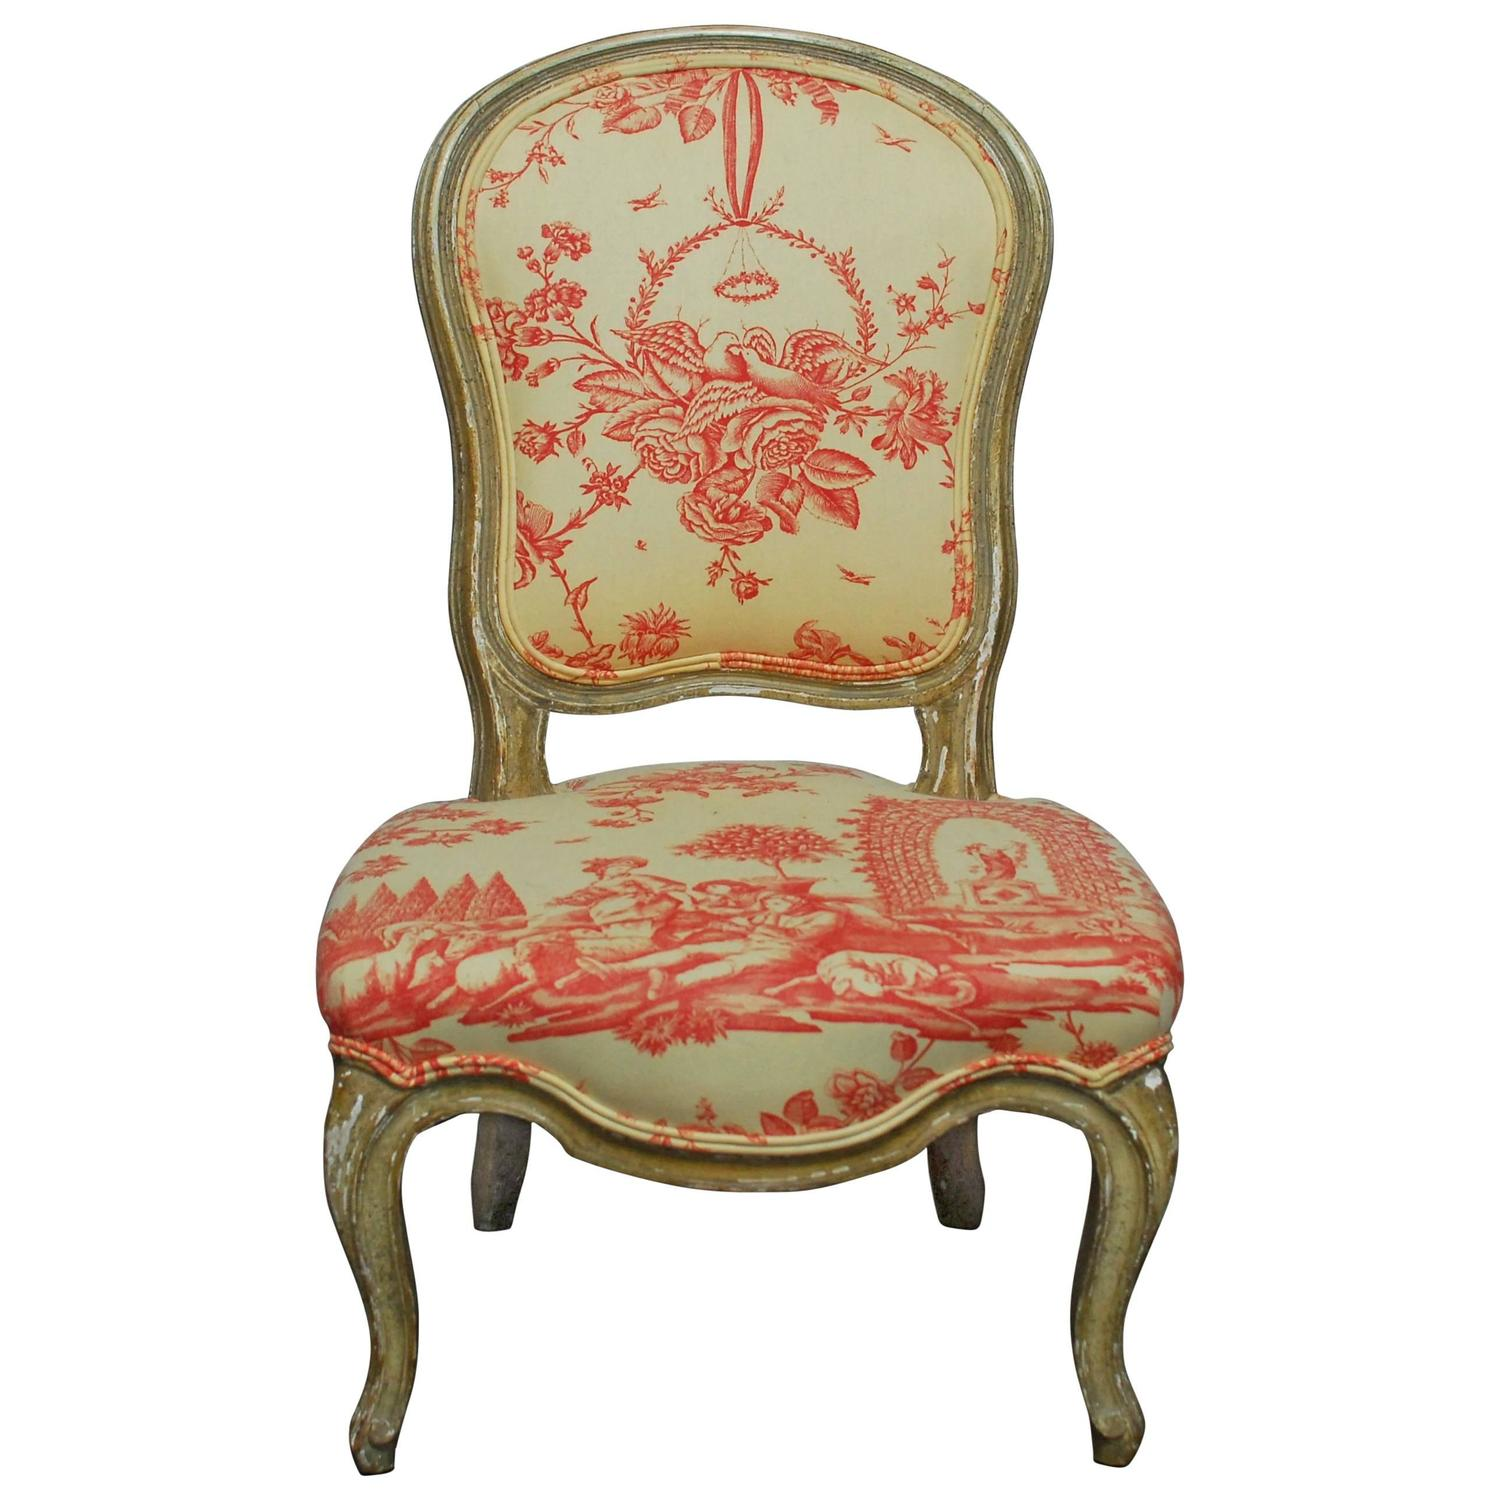 Toile Chair 19th Century Louis Xv Toile Slipper Chair For Sale At 1stdibs